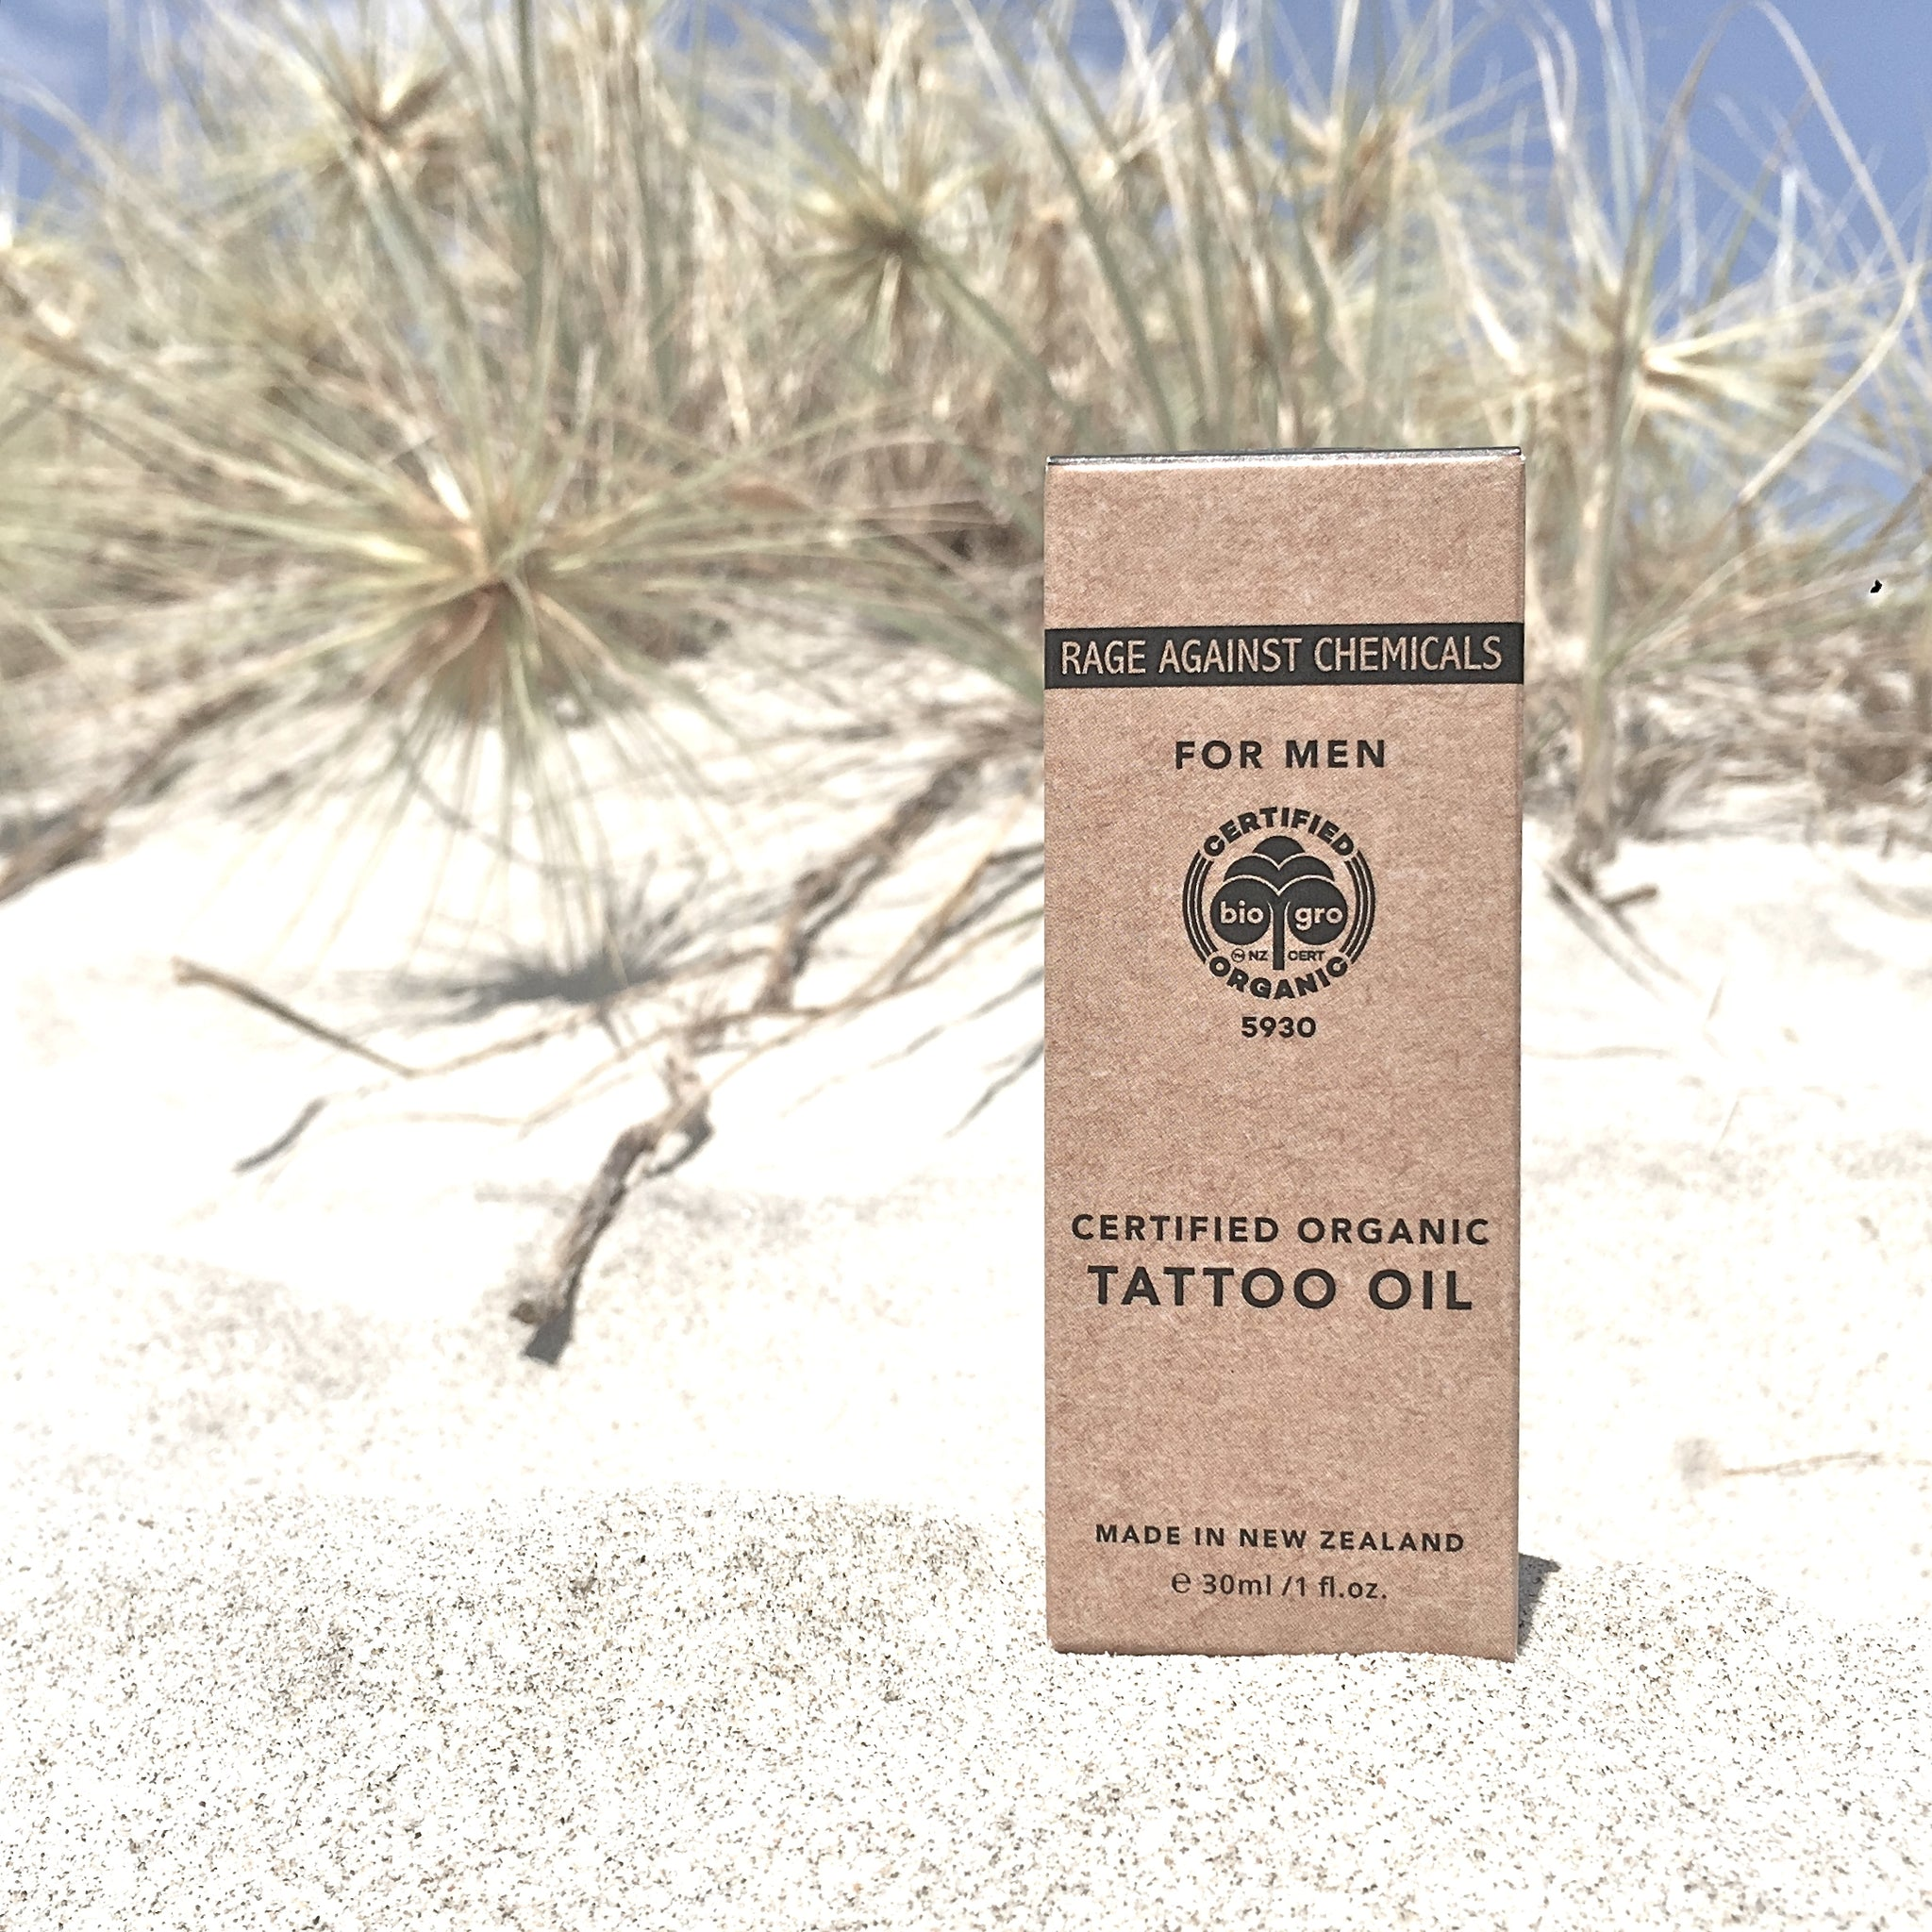 Tattoo Oil For Men - Certified Organic - Rage Against Chemicals  - Moisturise & Enhance Tattoos